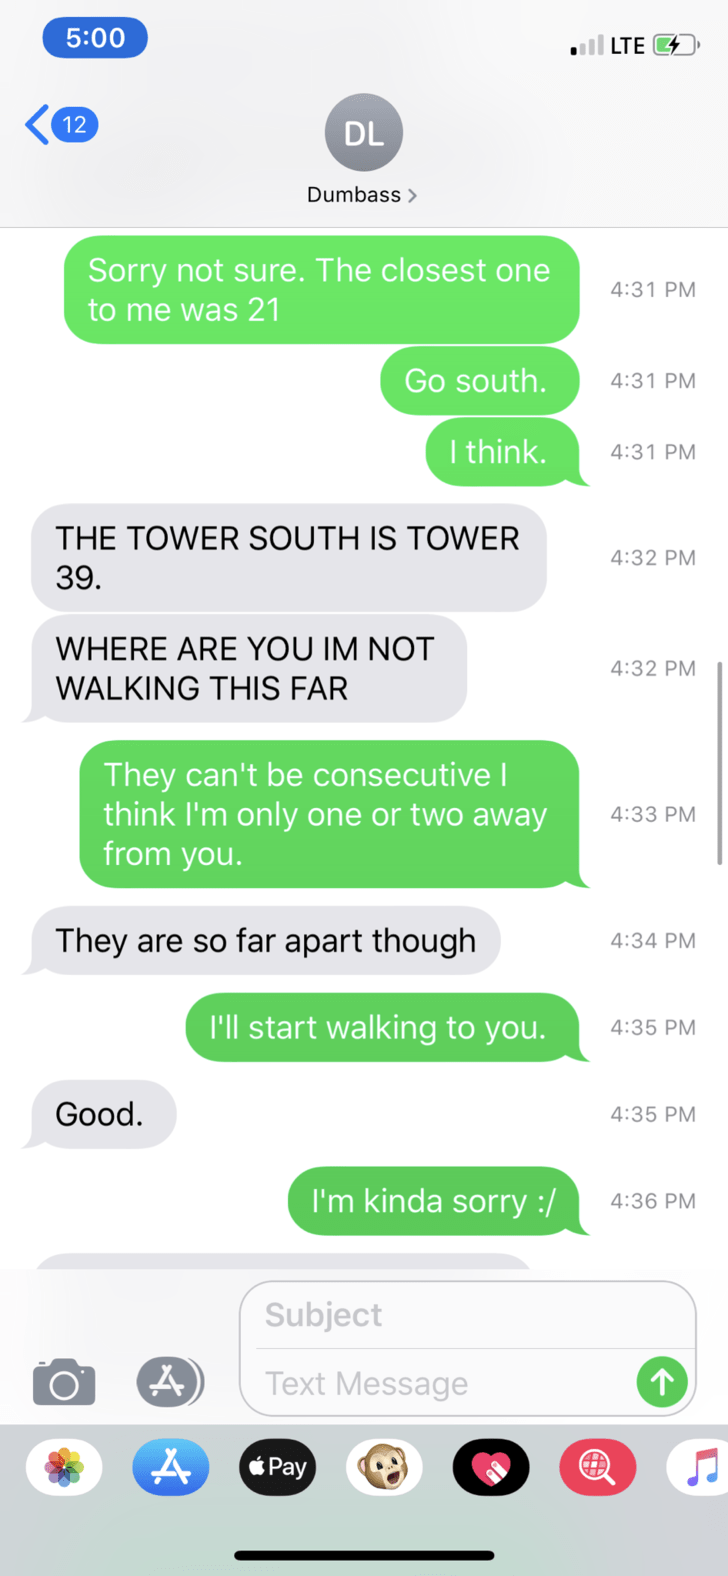 Text - 5:00 all LTE G 12 DL Dumbass Sorry not sure. The closest one to me was 21 4:31 PM Go south. 4:31 PM I think. 4:31 PM THE TOWER SOUTH IS TOWER 4:32 PM 39. WHERE ARE YOU IM NOT 4:32 PM WALKING THIS FAR They can't be consecutiveI think I'm only one or two away from you. 4:33 PM They are so far apart though 4:34 PM I'll start walking to you. 4:35 PM Good. 4:35 PM I'm kinda sorry :/ 4:36 PM Subject Text Message Pay